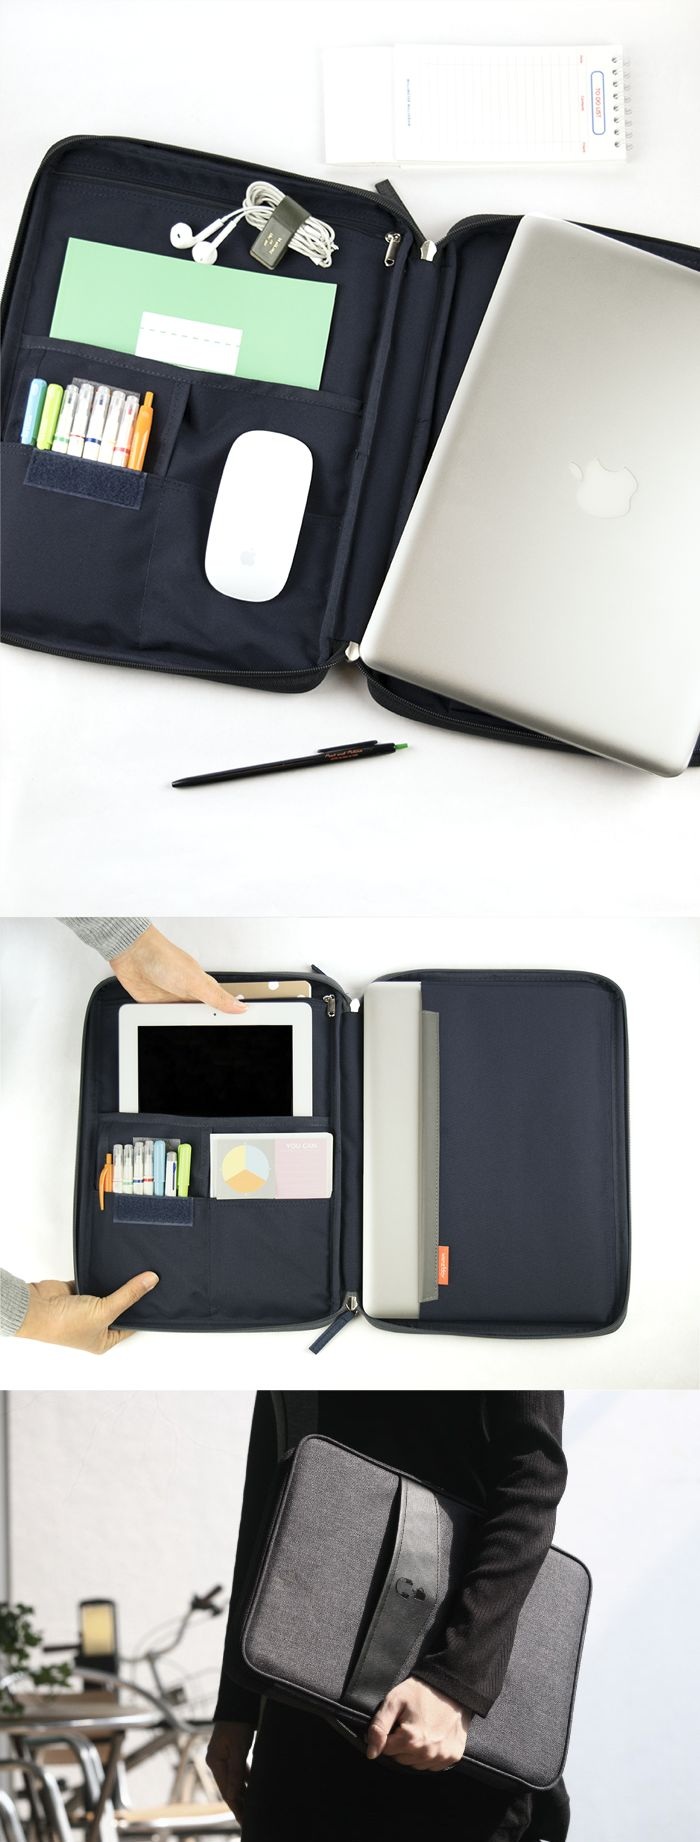 """Get ready for the MVP of Organization! The Better Together 13"""" Laptop Pouch v2 makes it sleek & simple. The right side has a pocket for your laptop & the other side has a zippered pocket for chargers, a large open pocket for a tablet, 2 small pockets for pens & earbuds. That's not all, there is also an open pocket on the front for your papers as well as a zippered pocket in the back. The handle allows easy transport & the layers of cushioning ensure flawless protection. See more at…"""